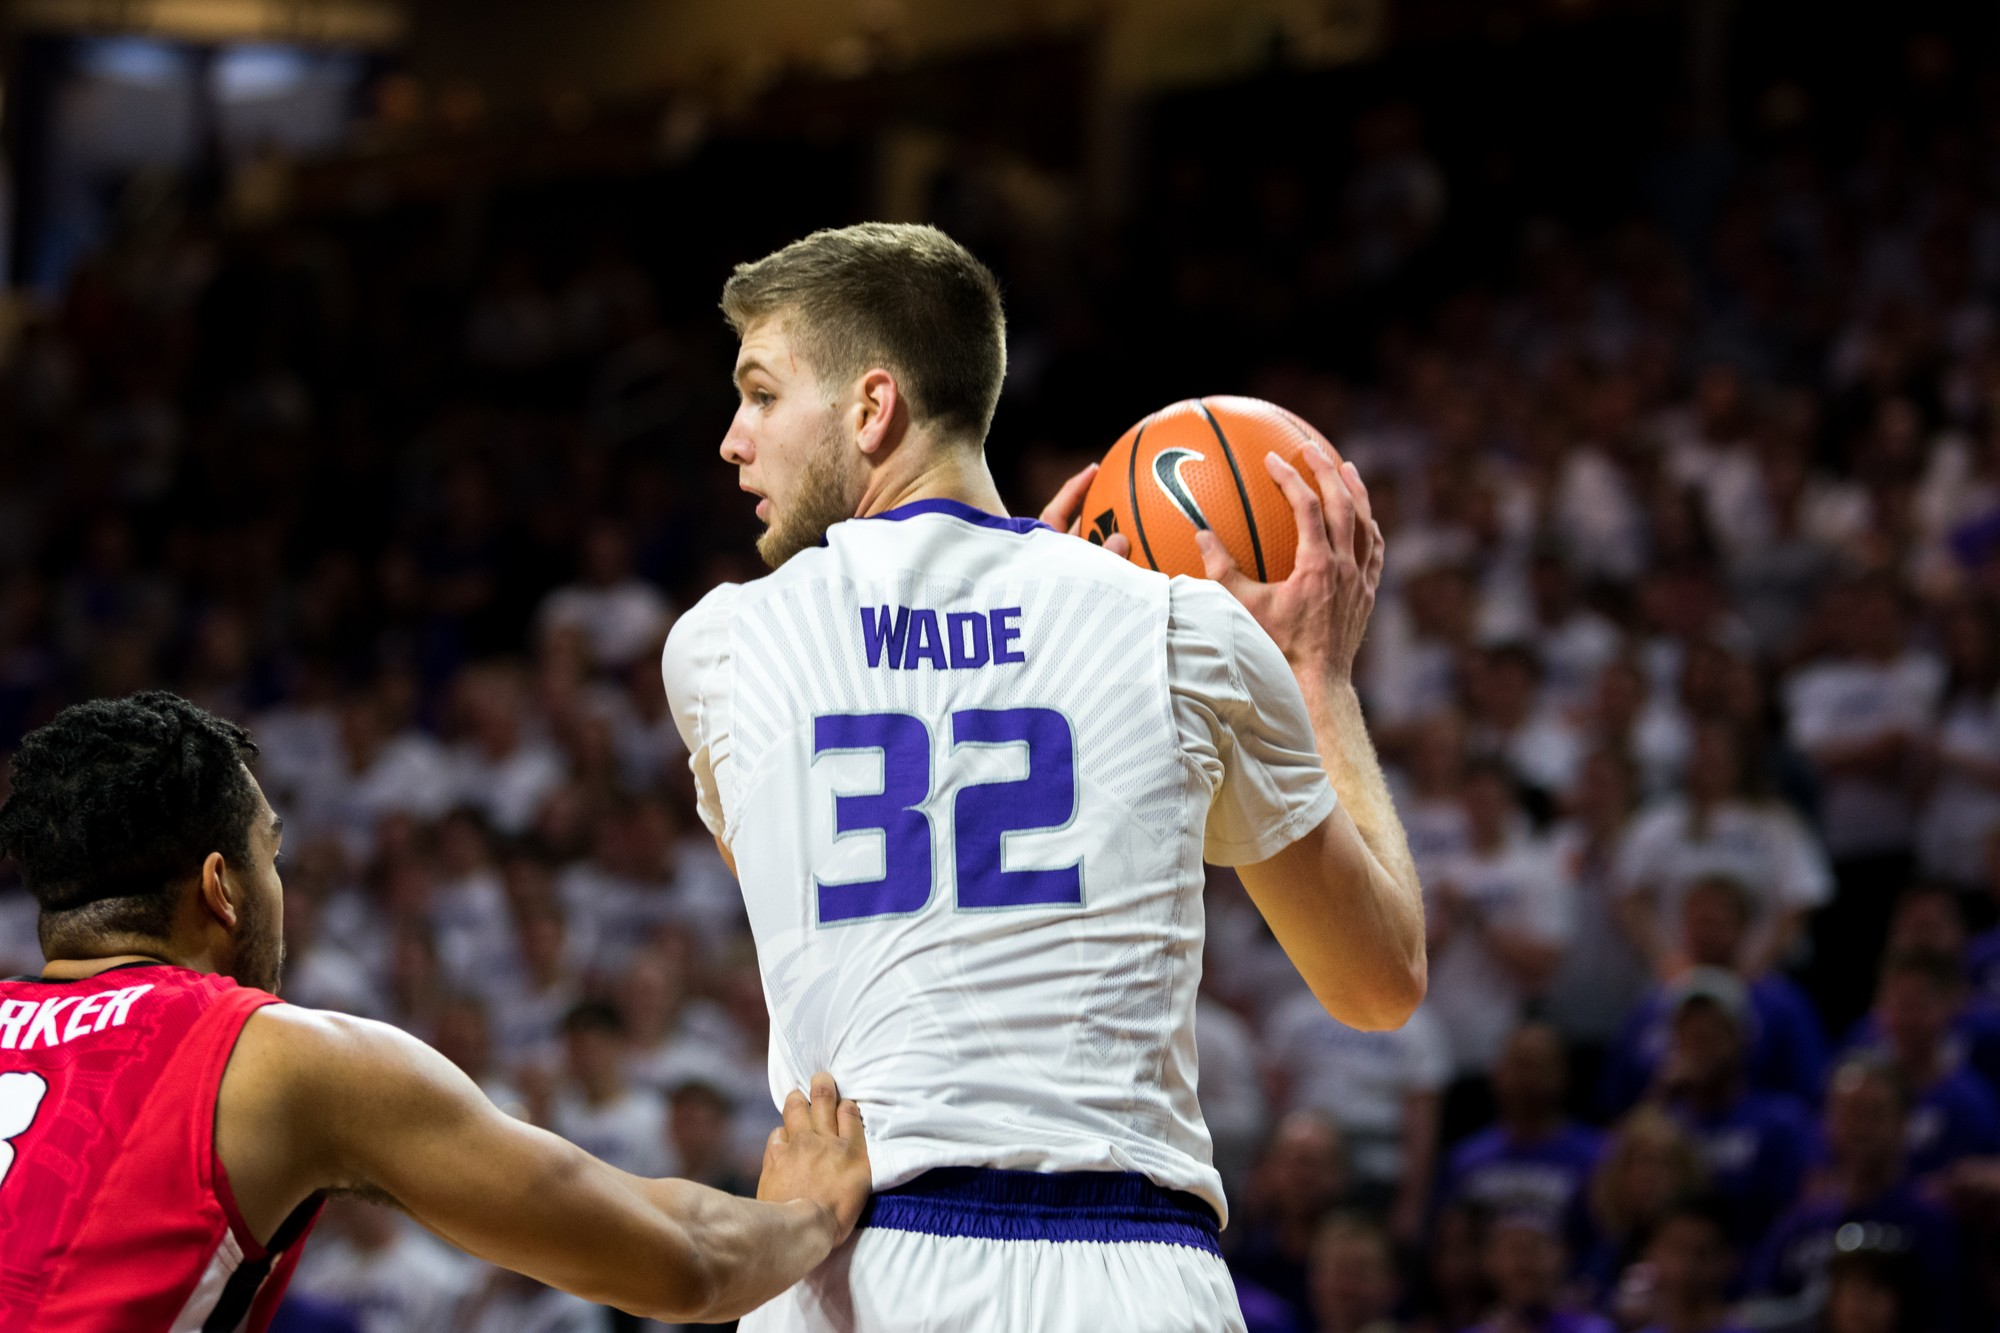 Kansas State vs. Georgia - 1/27/18 College Basketball Pick, Odds, and Prediction